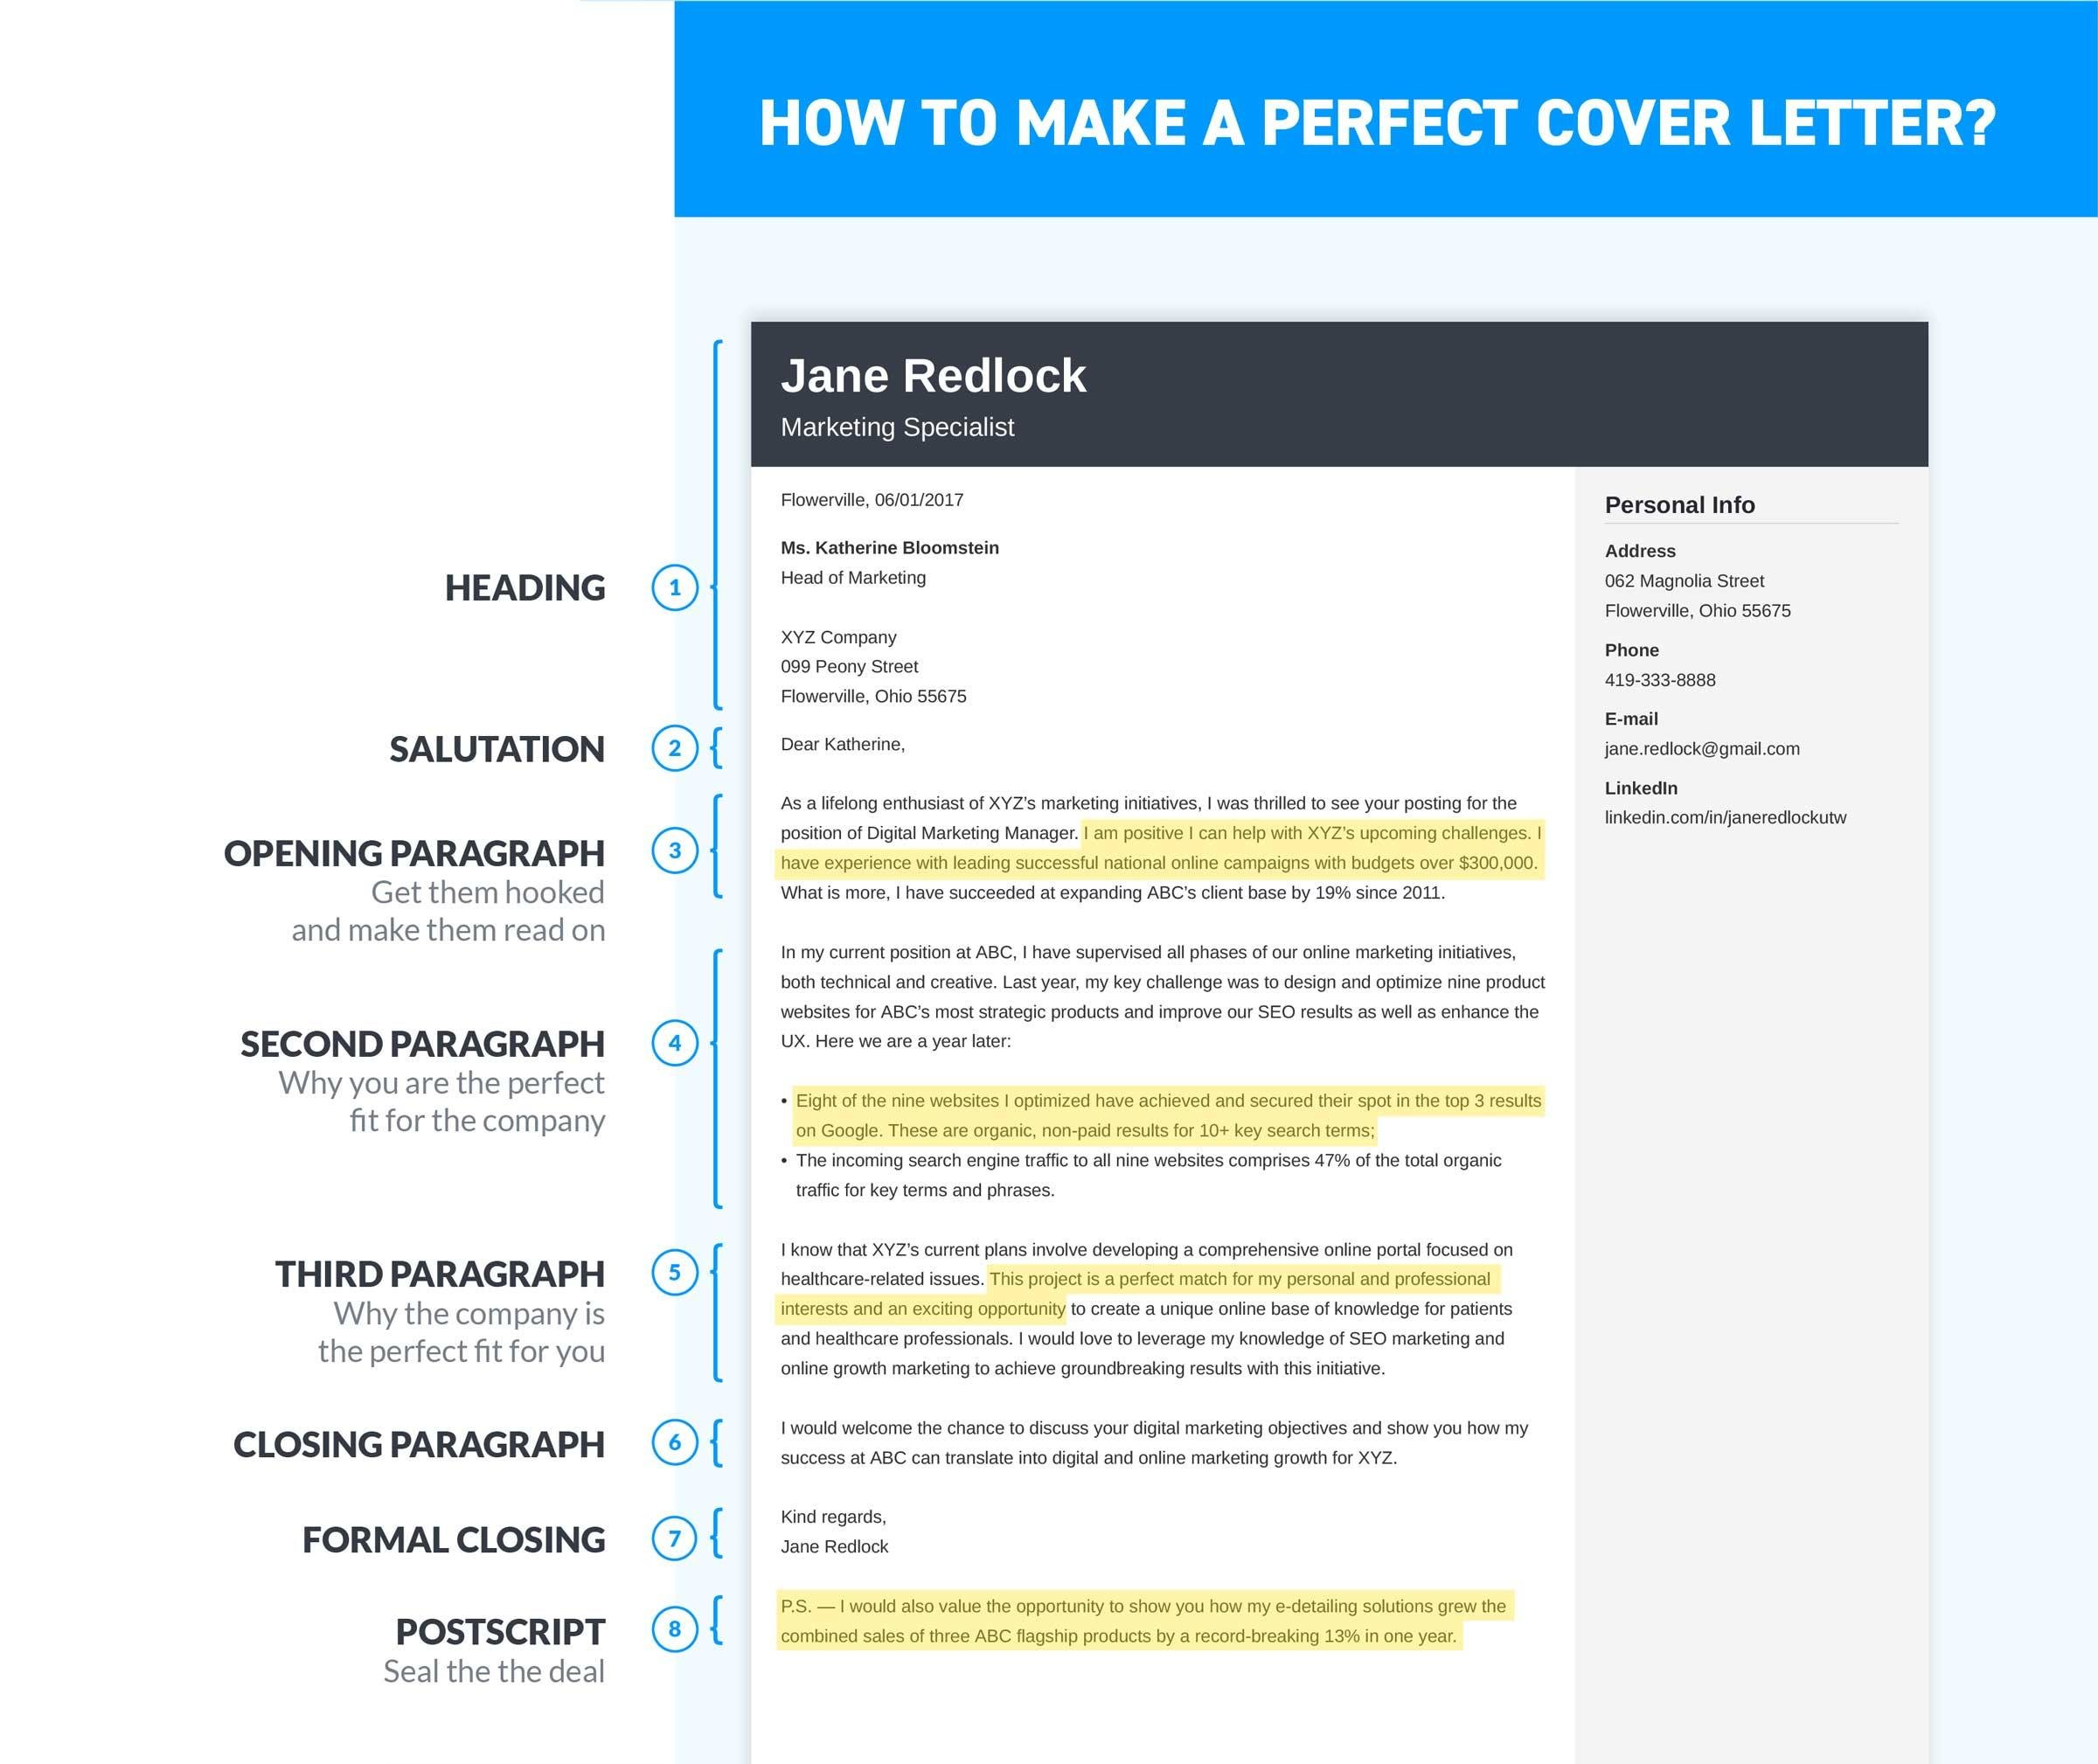 how to make a perfect cover letter infographic - How To Write A Cover Letter Examples